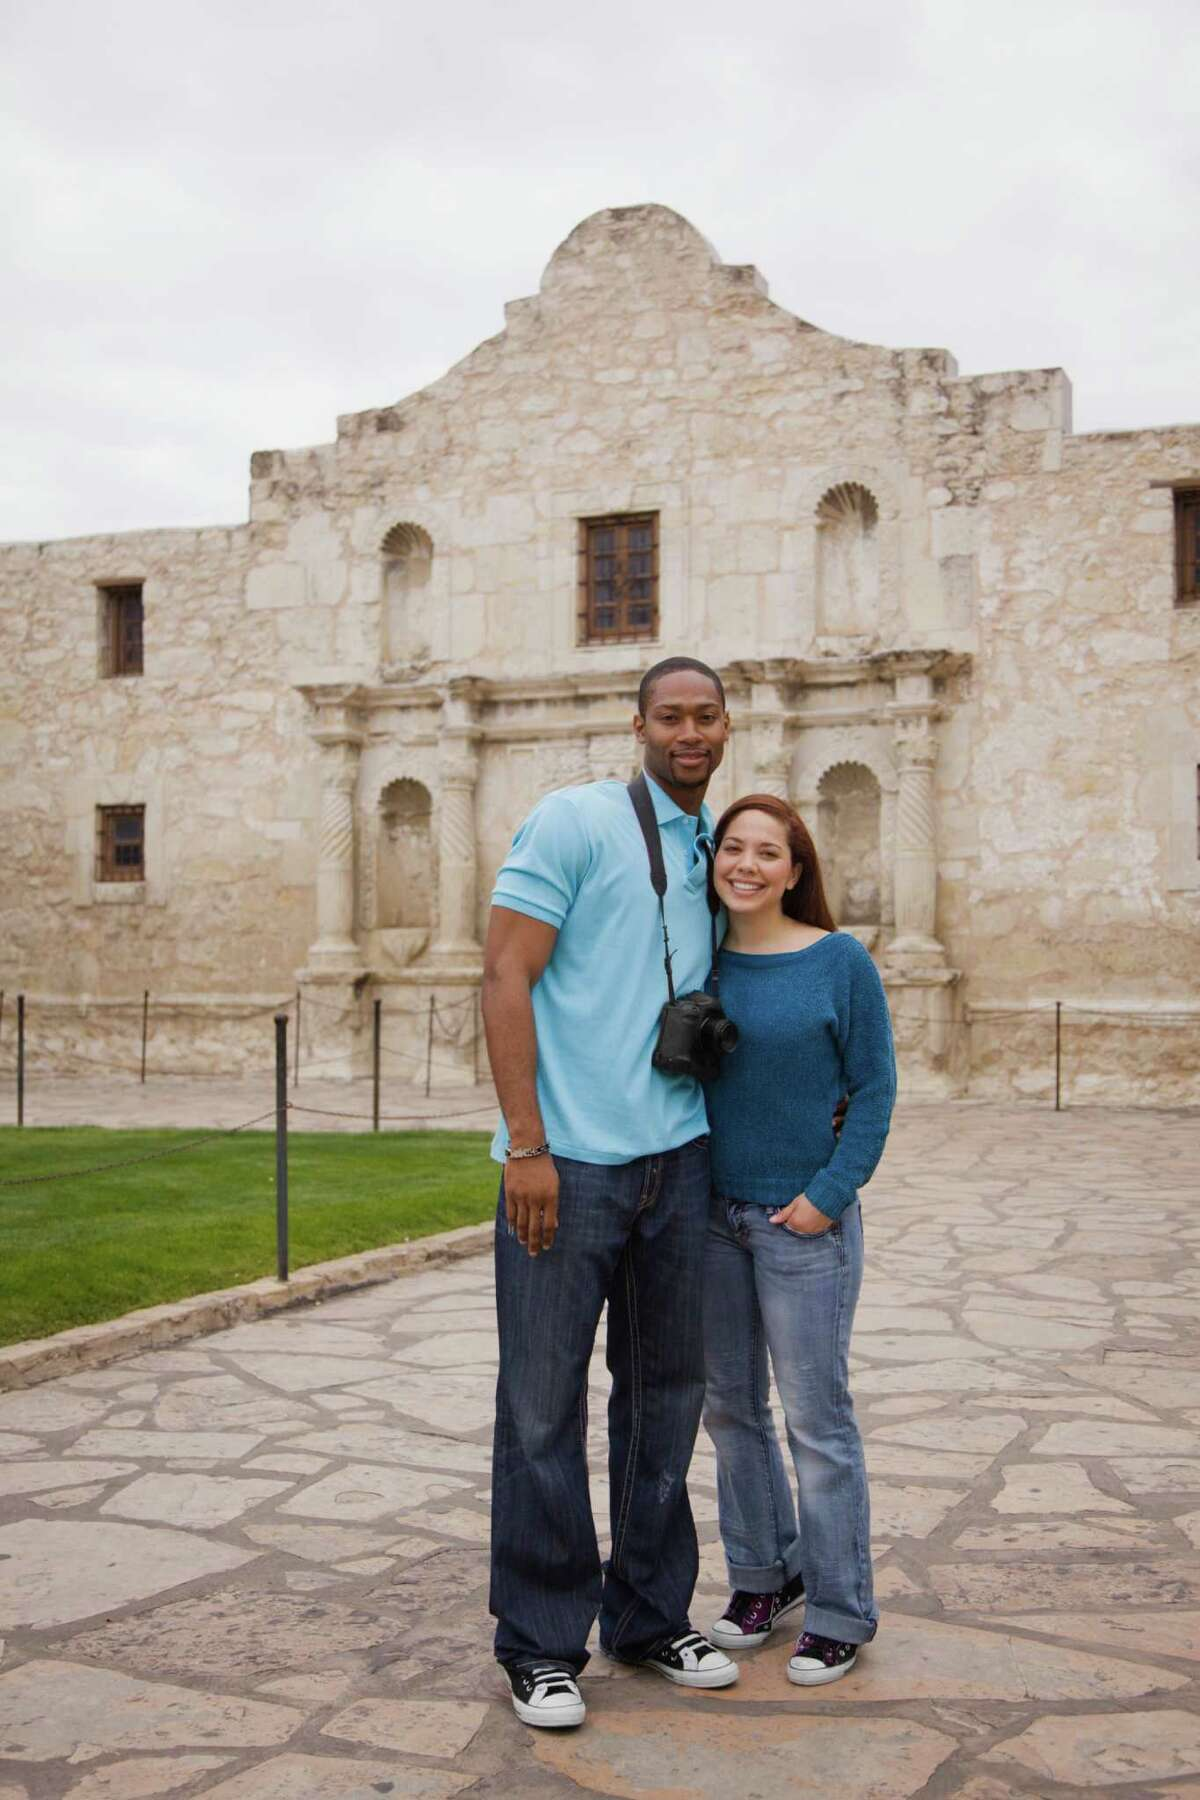 How many times have you taken one of these with visiting friends or family? San Antonio is known for the Alamo almost as much as it's known for photos of tourists posing in front of the Alamo.